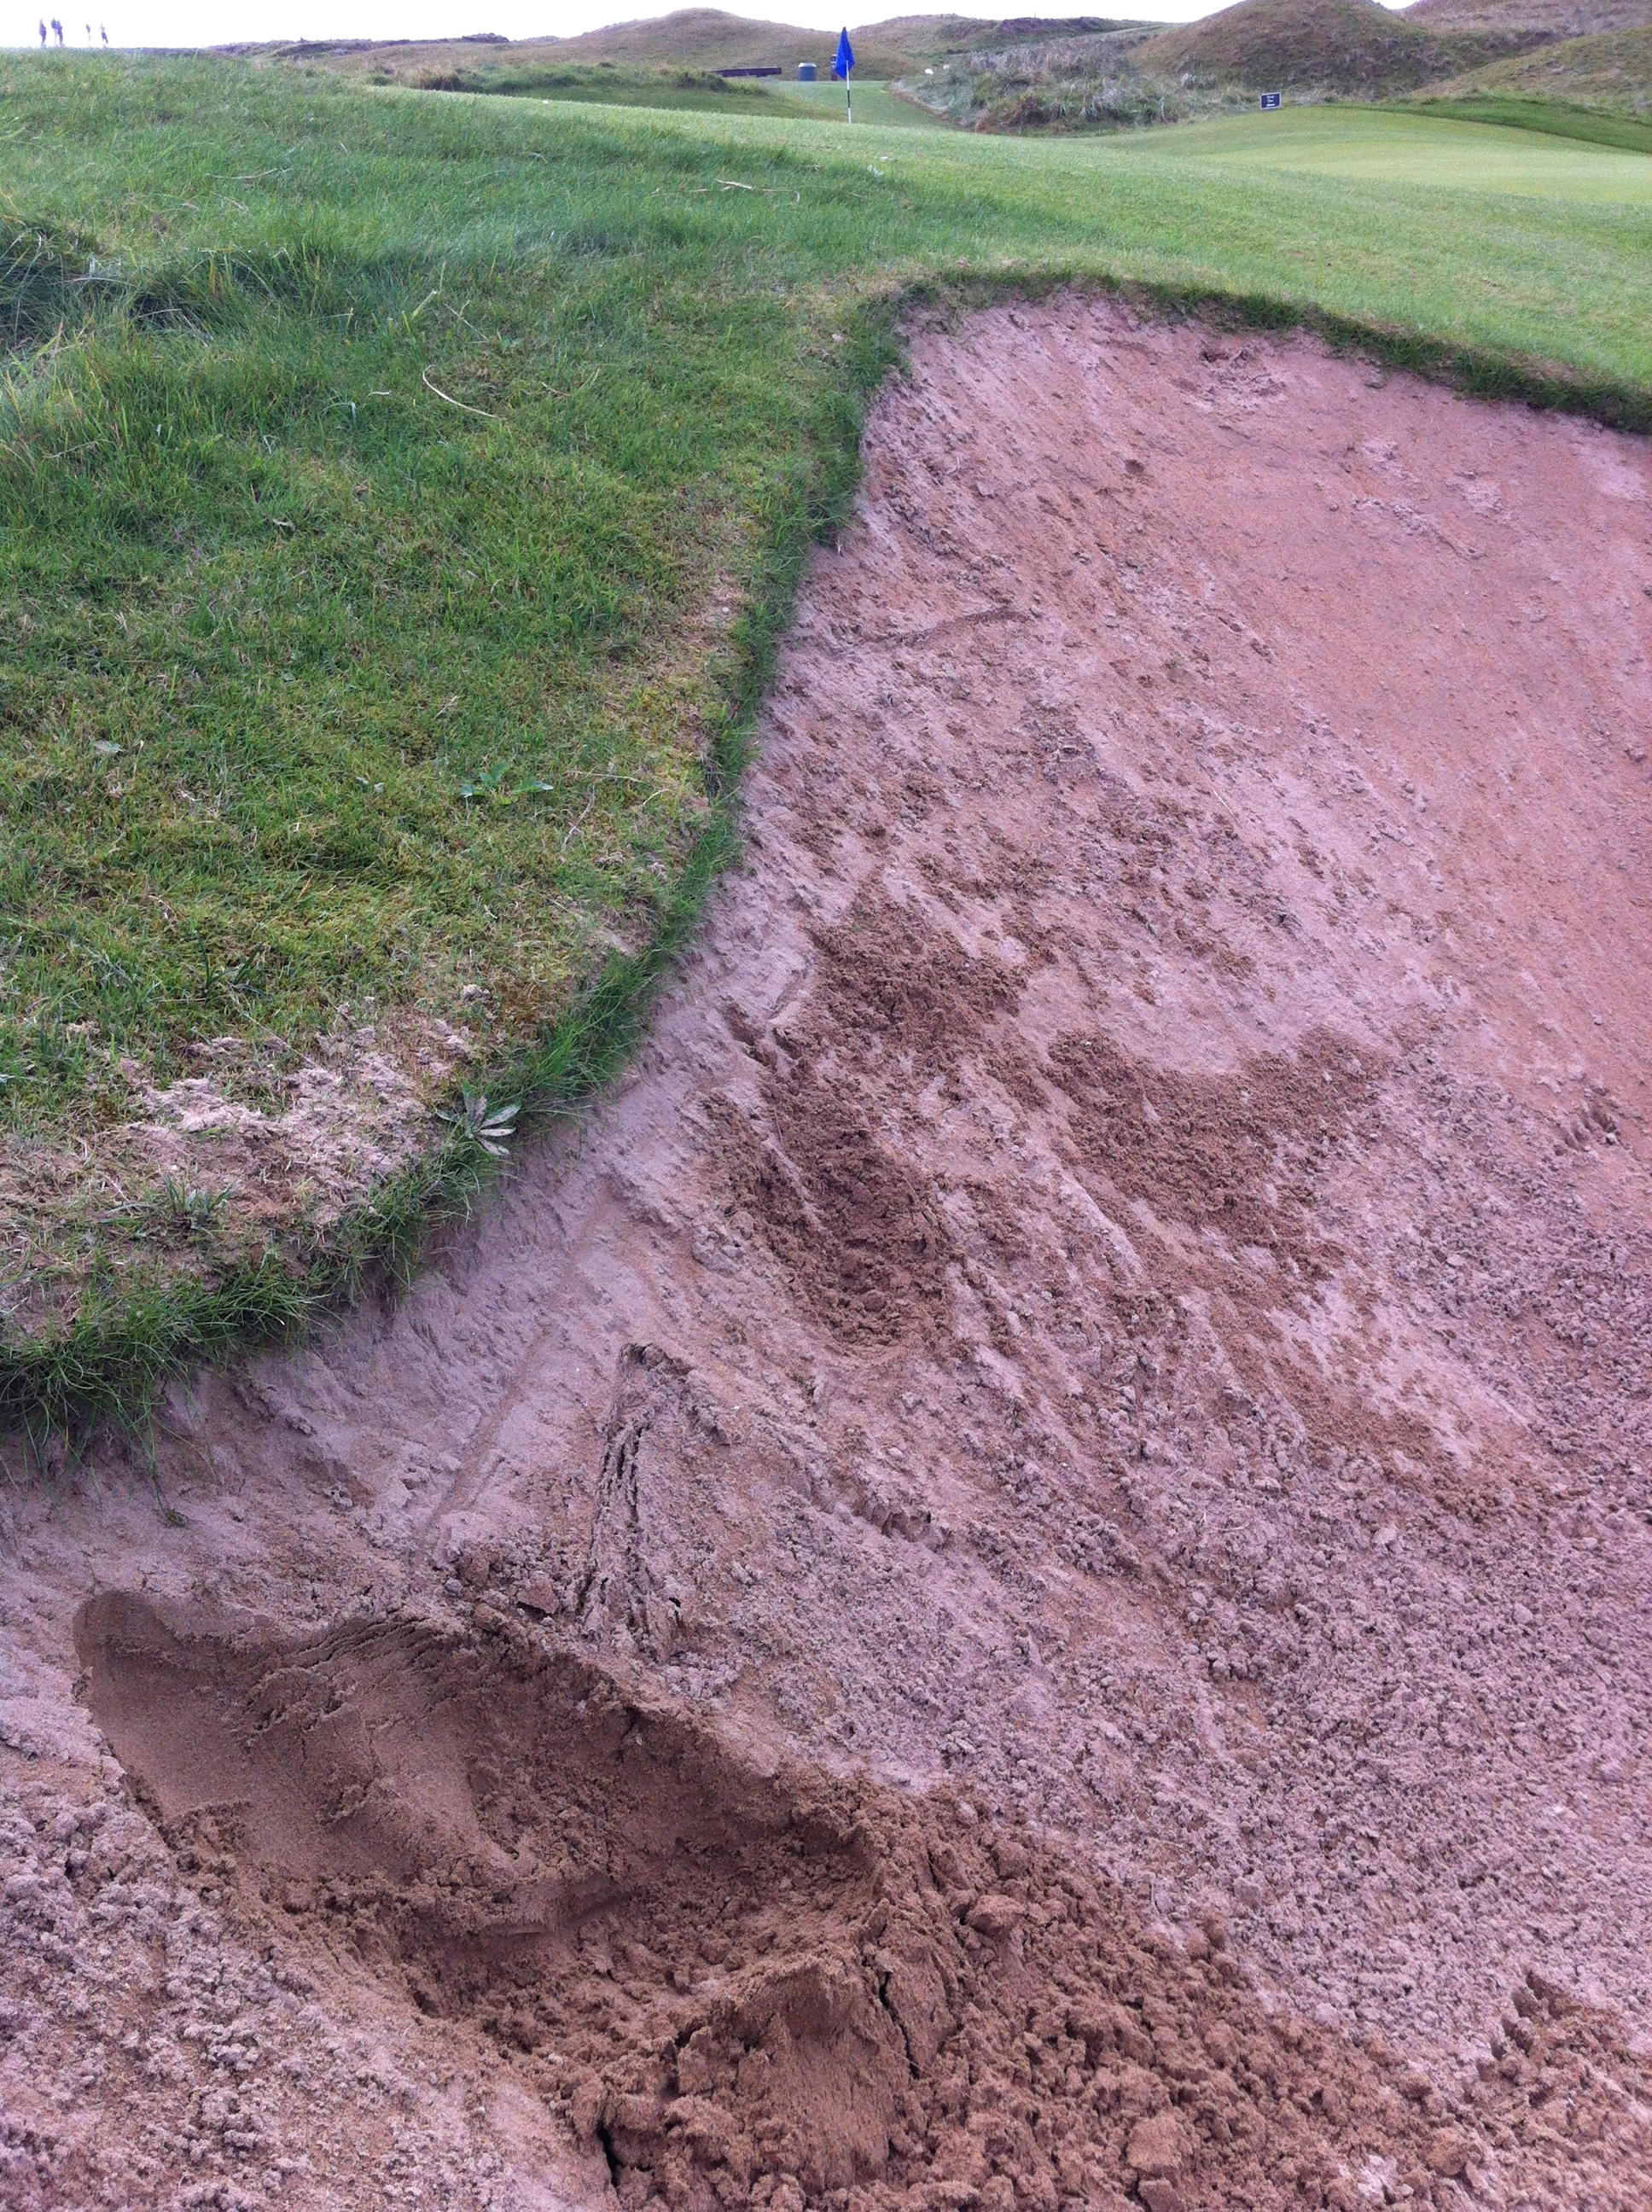 My bold sand shot was close enough to the pin that I was able to one put and make my par. Beauty eh!